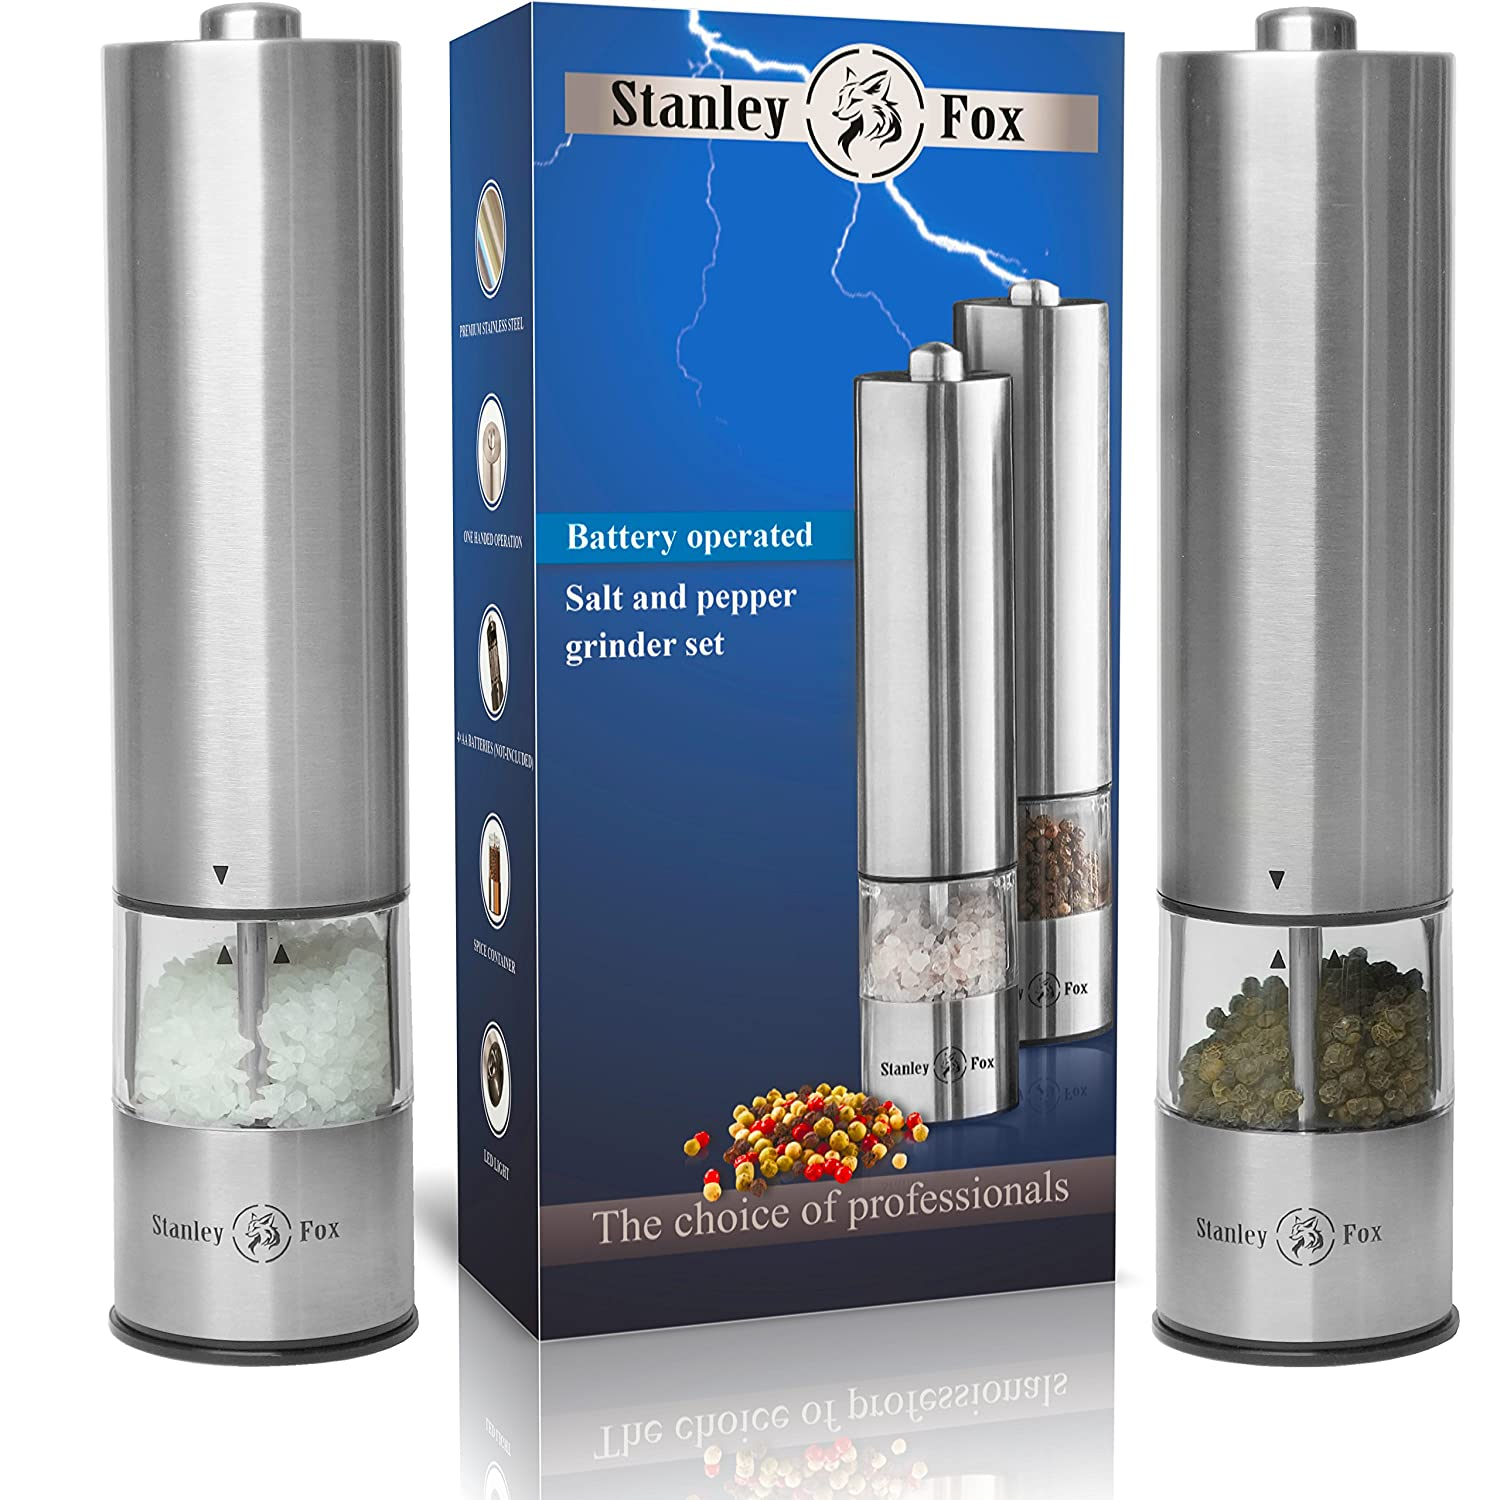 Stanley Fox Electric Salt and Pepper Grinder Set - Salt and Pepper shakers with LED - Automatic Mills - Battery Operated Salt Grinder and Pepper Mill - One-Handed Pepper Grinder